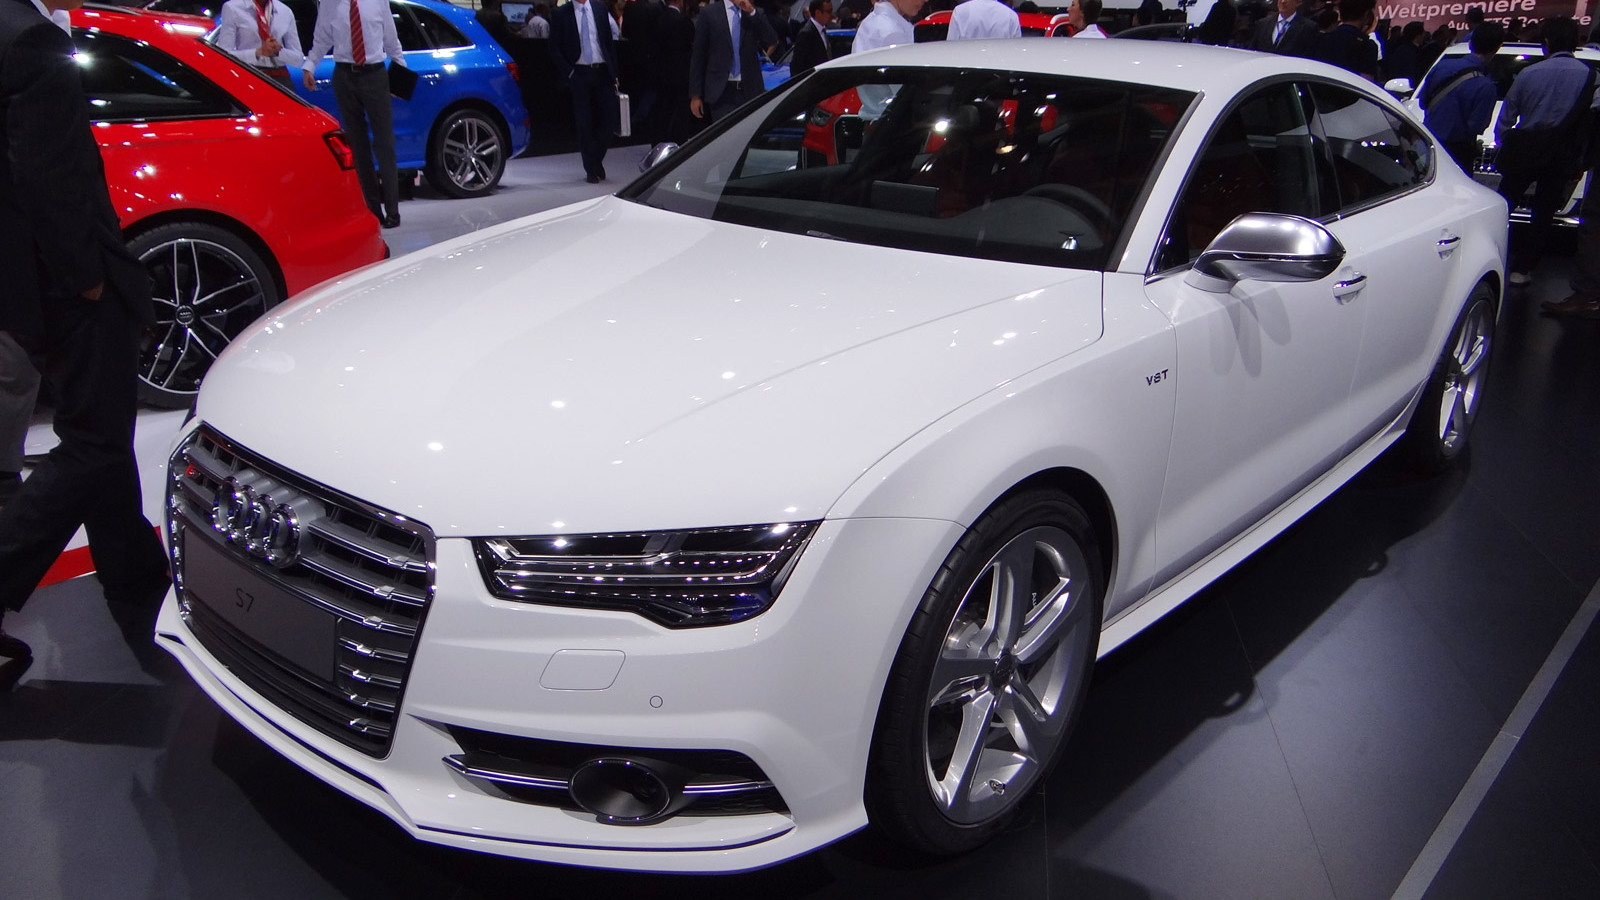 2016 Audi S7 (European spec), 2014 Paris Auto Show